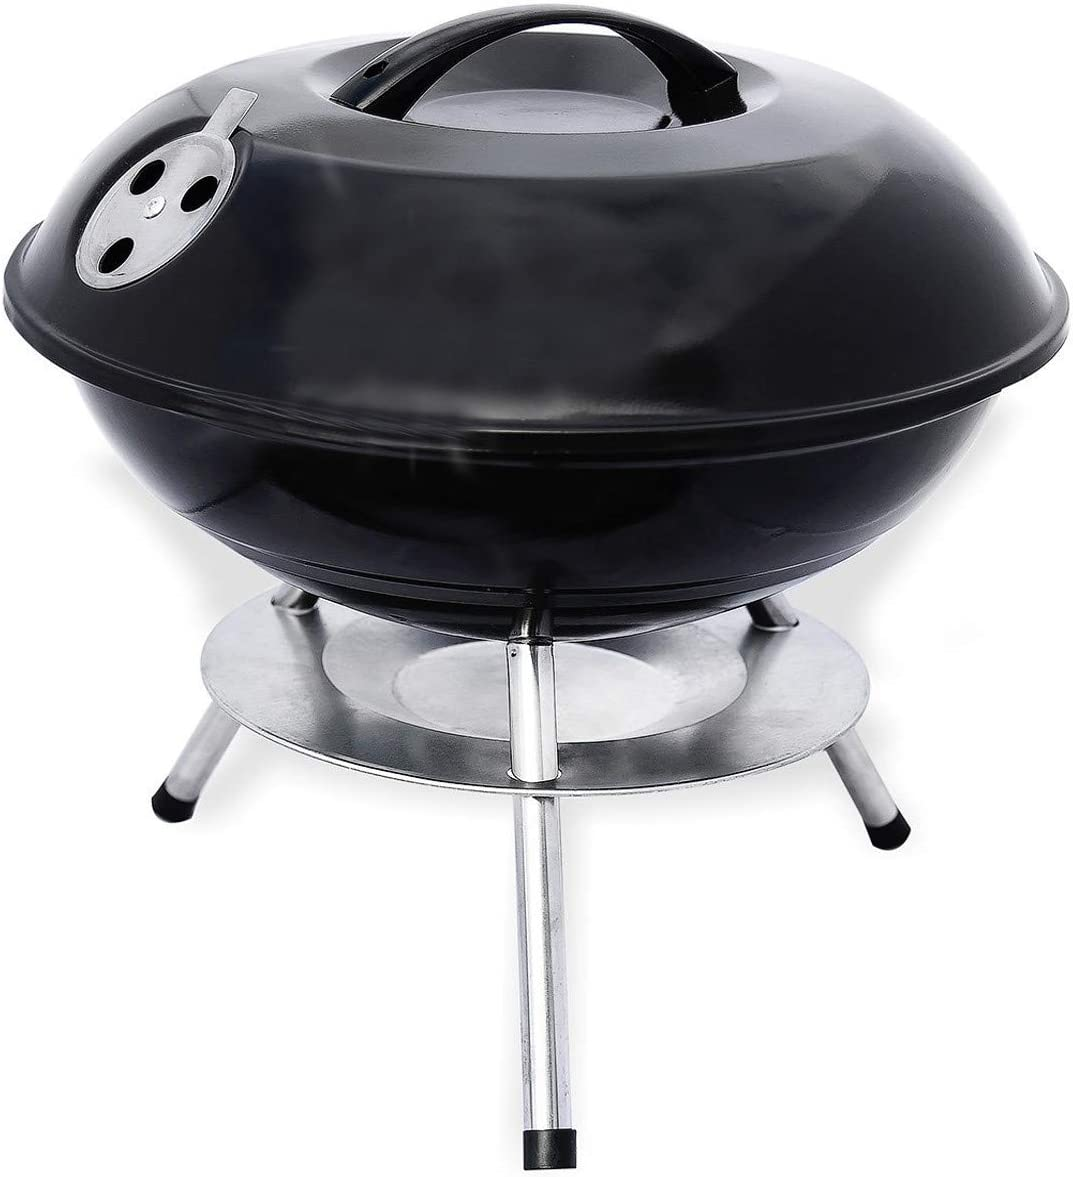 LavoHome Charcoal Grill Outdoor A surprise price is Low price realized Kettle BBQ Portable Coo Backyard